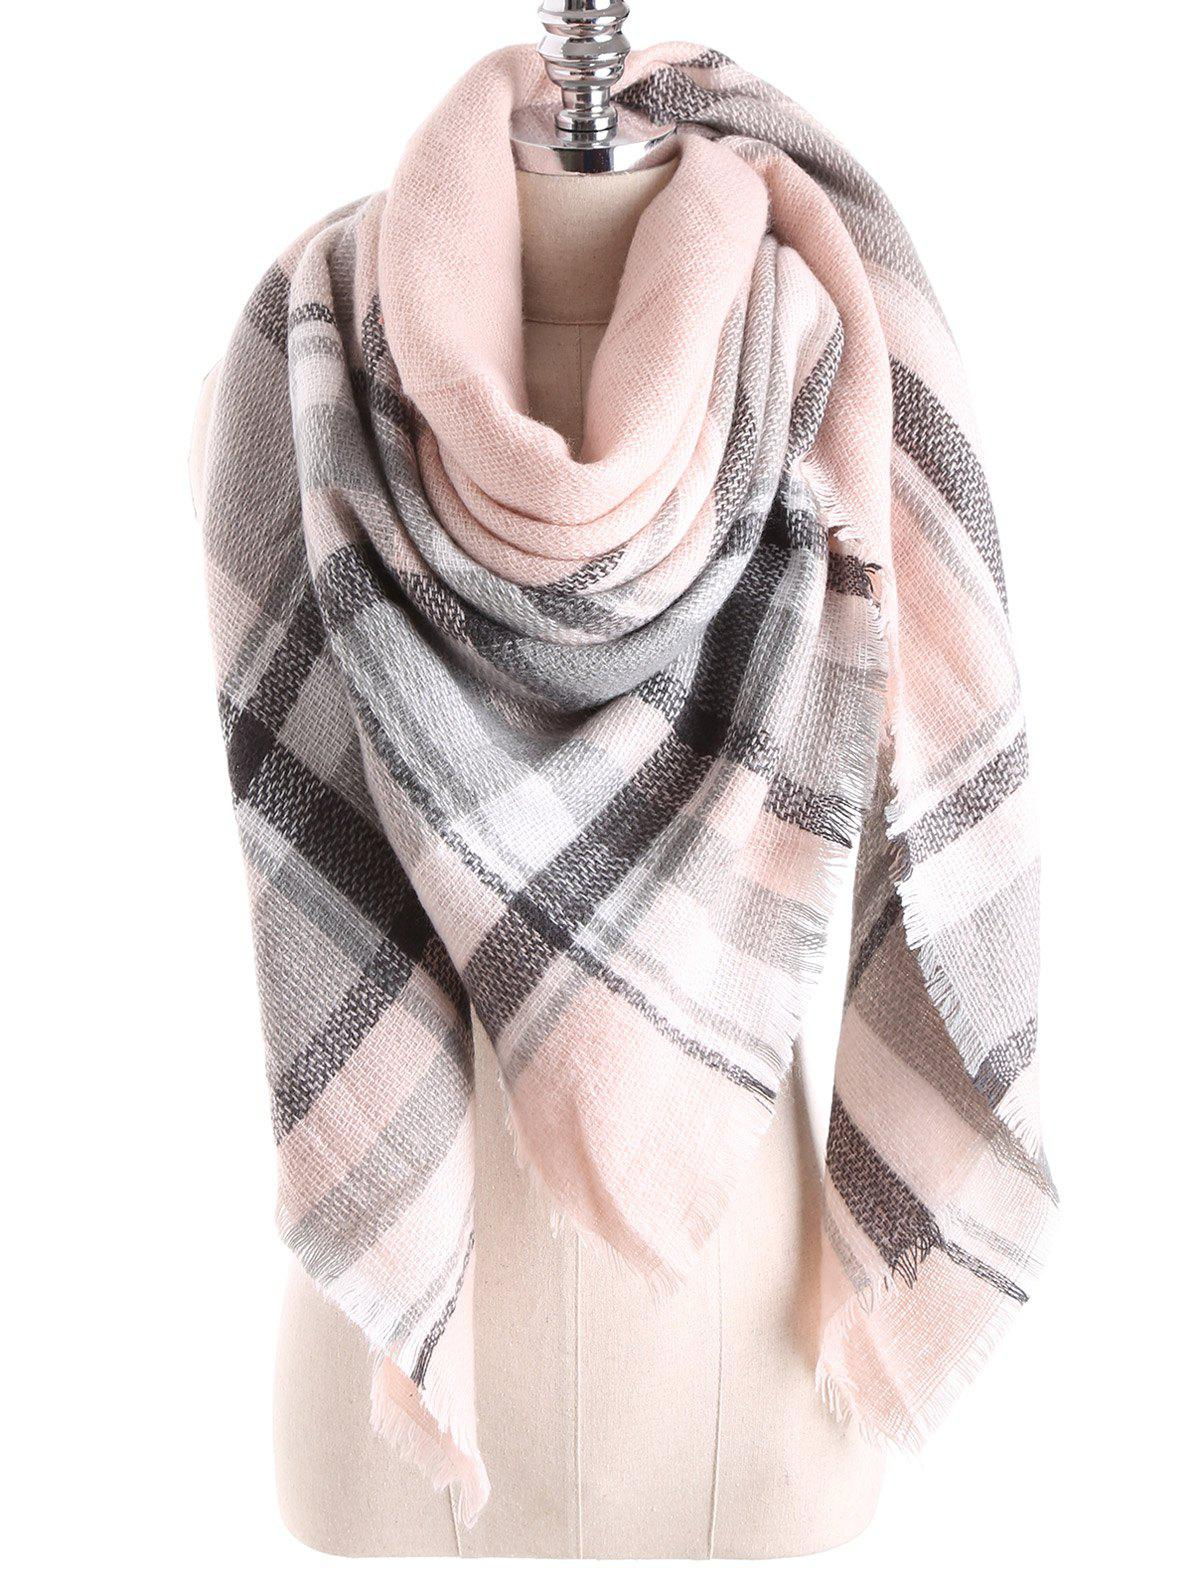 Warm Tartan Plaid Blanket Shawl Scarf - PEARL LIGHT PINK